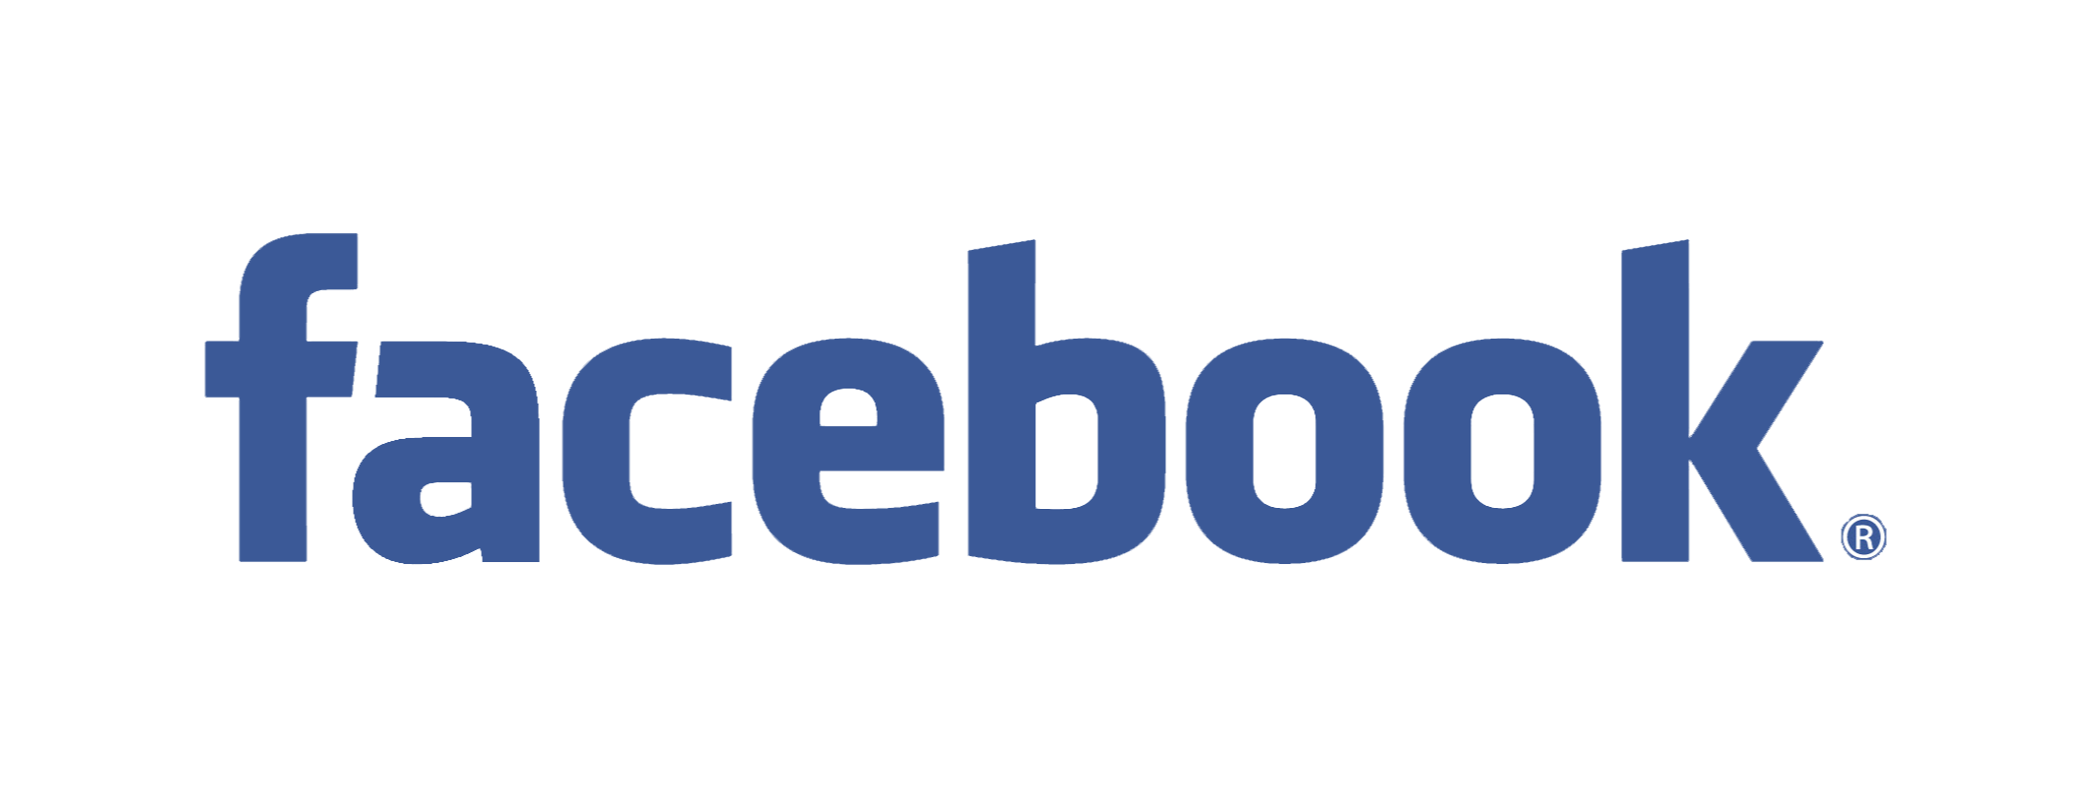 Facebook Logo Photo 6375